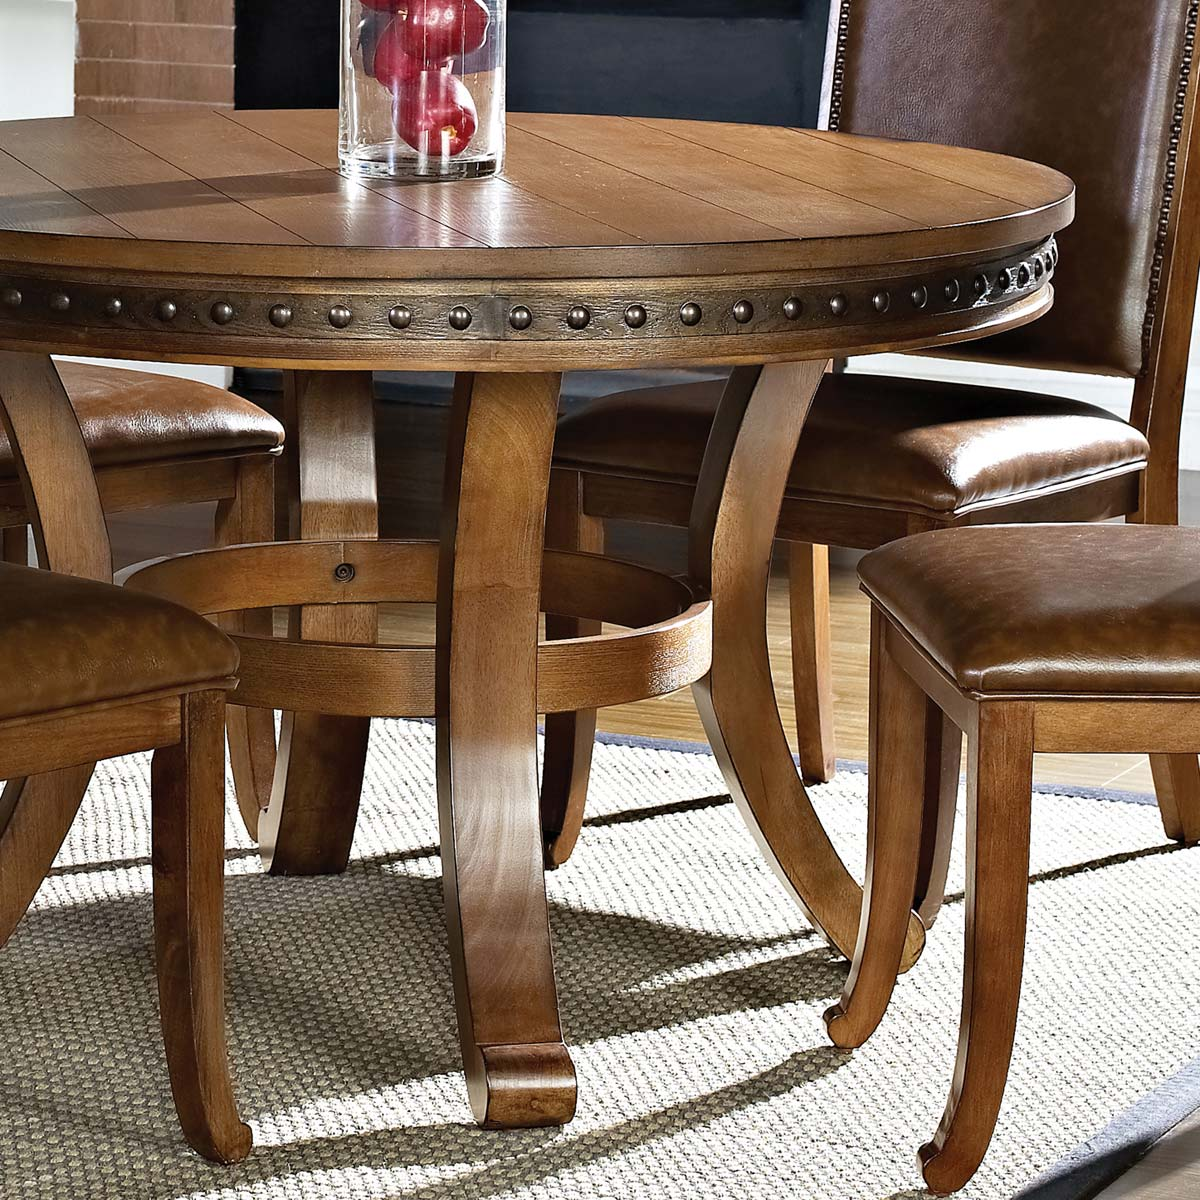 Ashbrook Round Wood Dining Table - Antique Nail Heads - SSC-AB480T